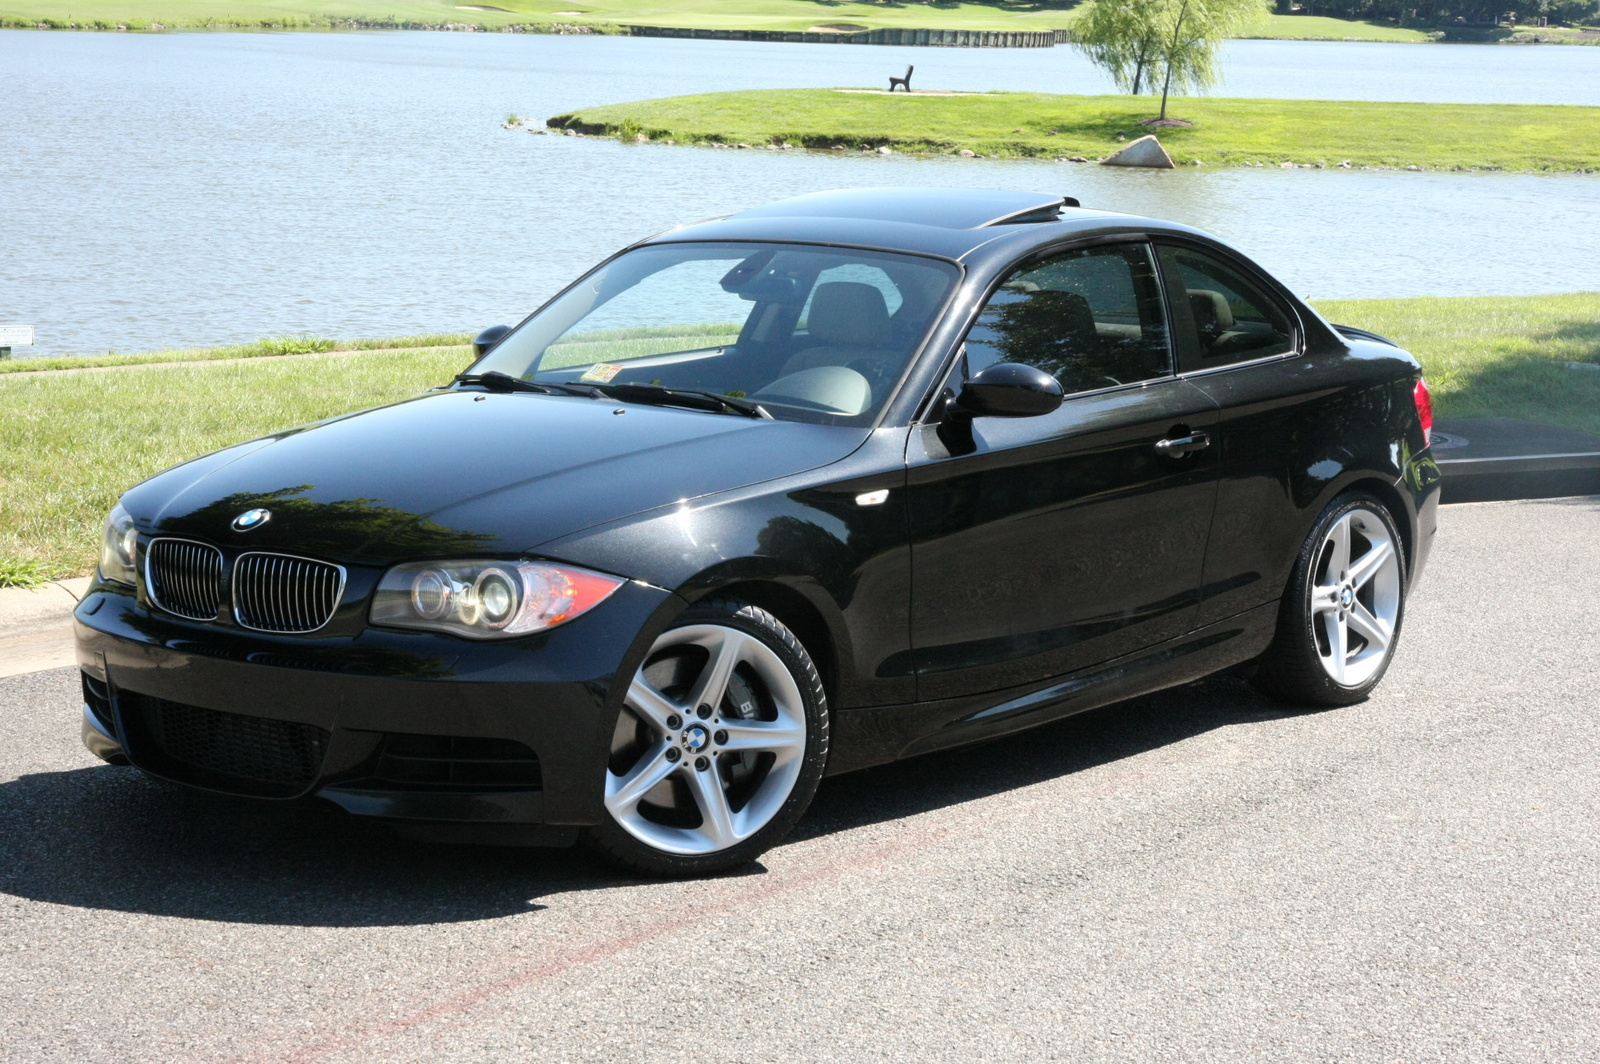 2009 bmw 1 series pictures cargurus. Black Bedroom Furniture Sets. Home Design Ideas